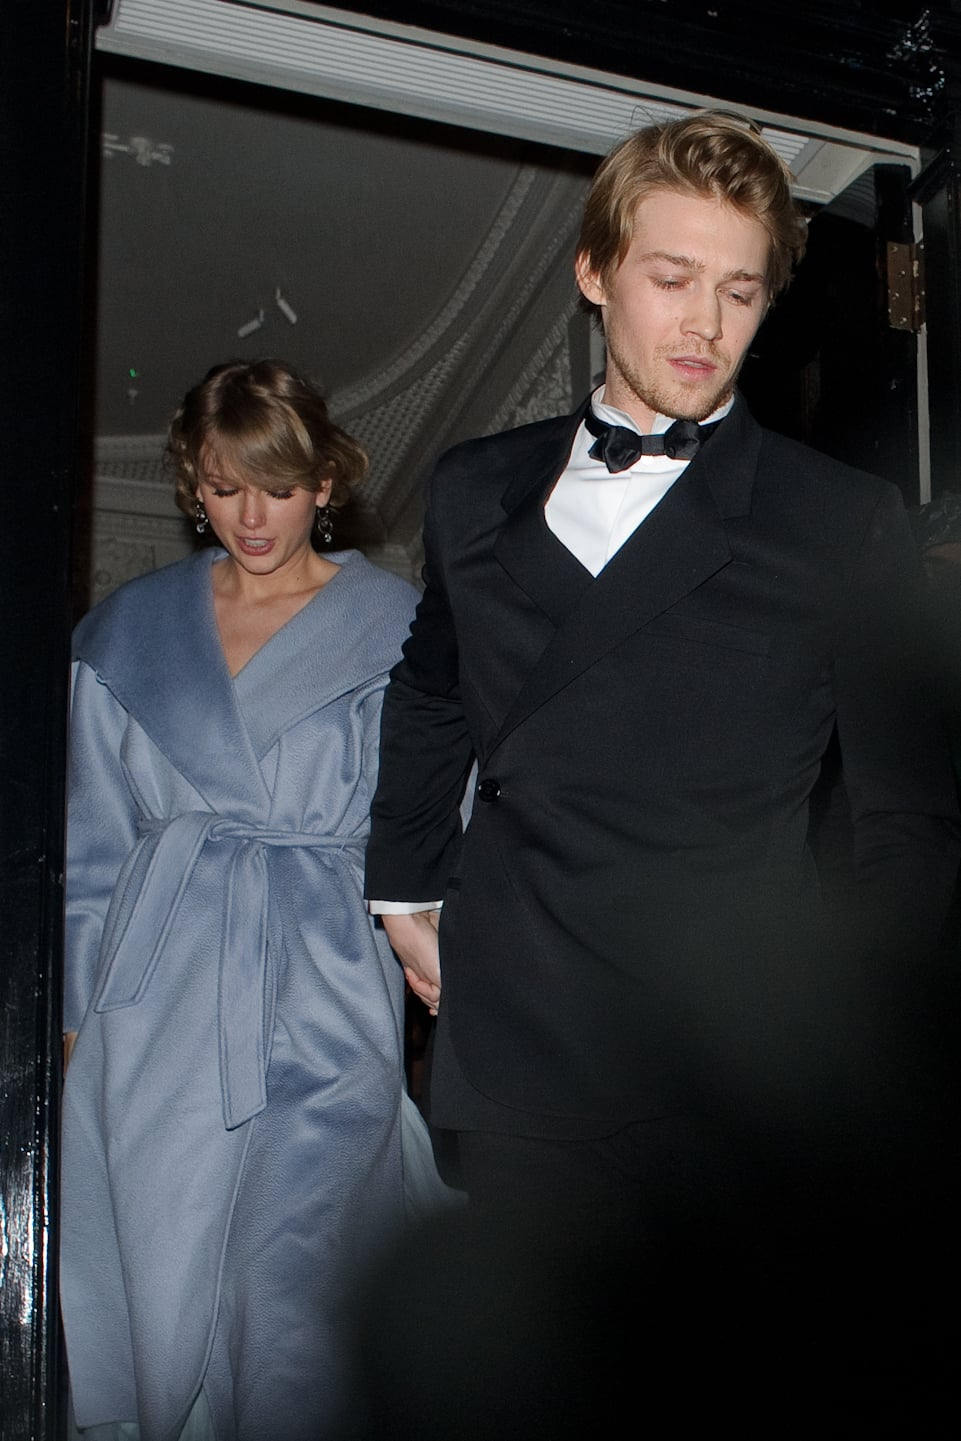 LONDON, ENGLAND - FEBRUARY 10:  Taylor Swift and Joe Alwyn seen attending the Vogue BAFTA party at Annabel's club in Mayfair on February 10, 2019 in London, England. (Photo by GOR/GC Images)